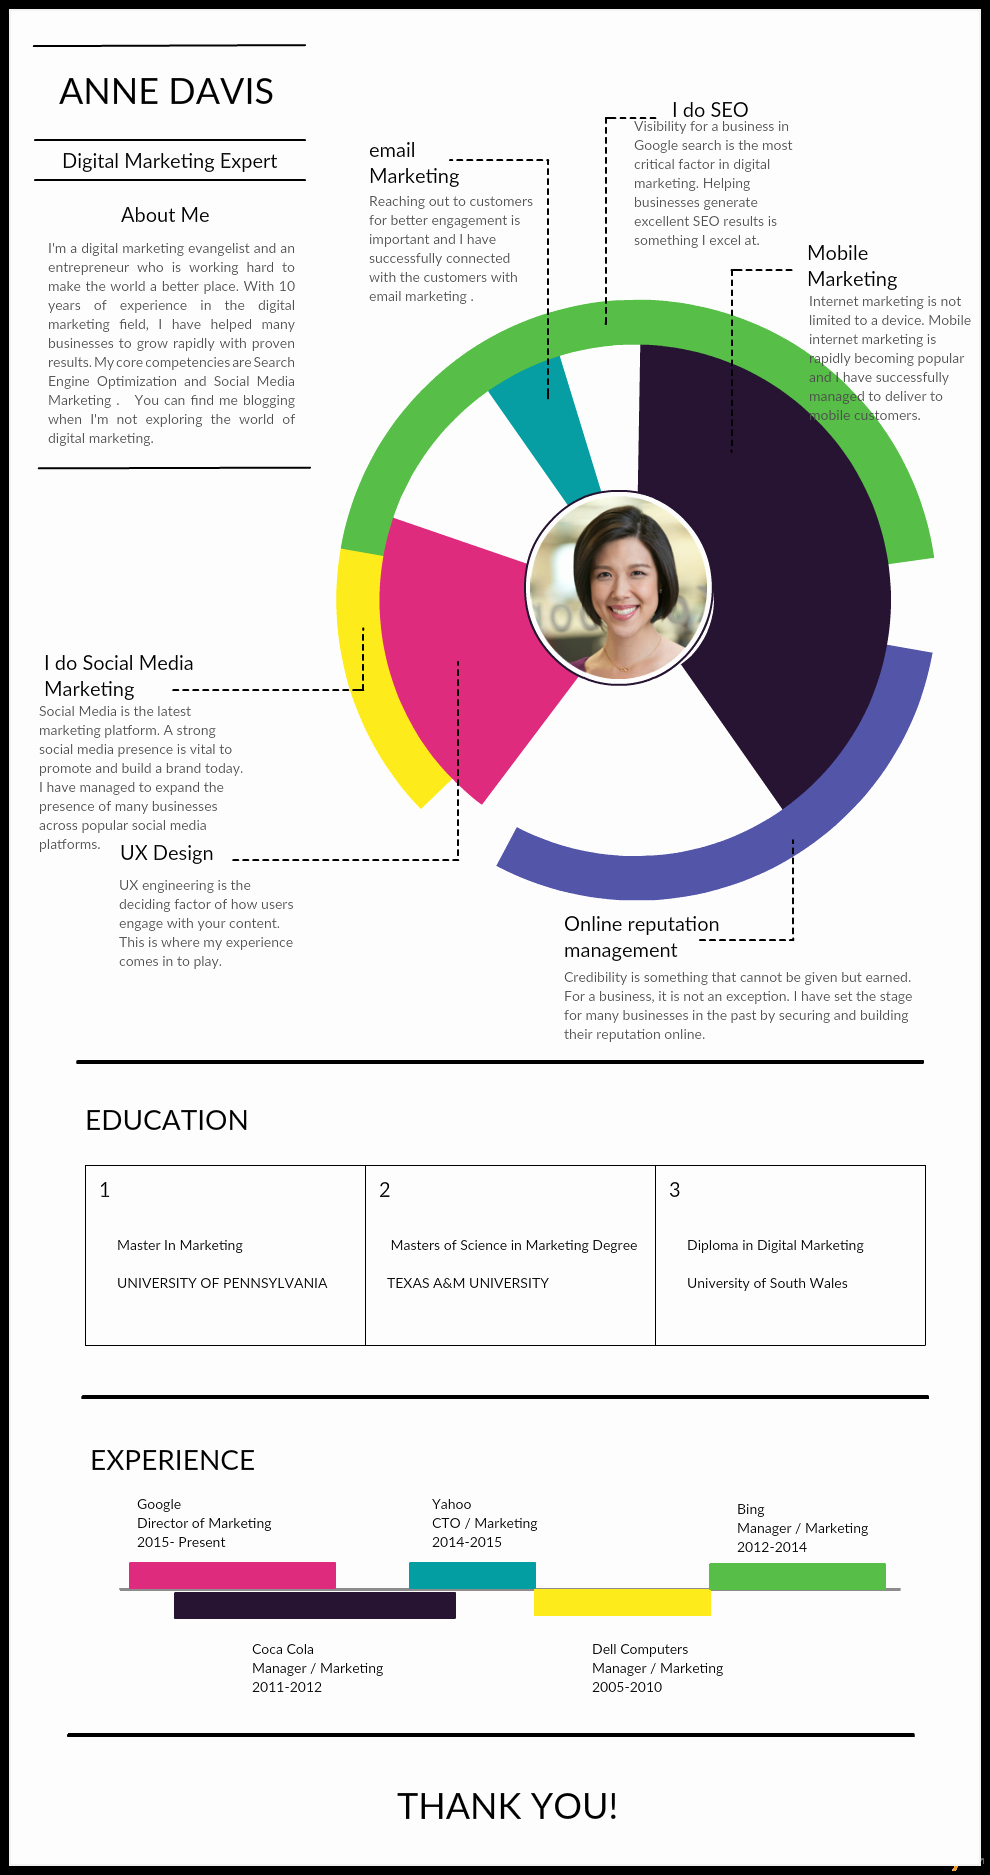 Infographic Resume Template Free Unique Infographic Resume Templates the Recruiters Will Love